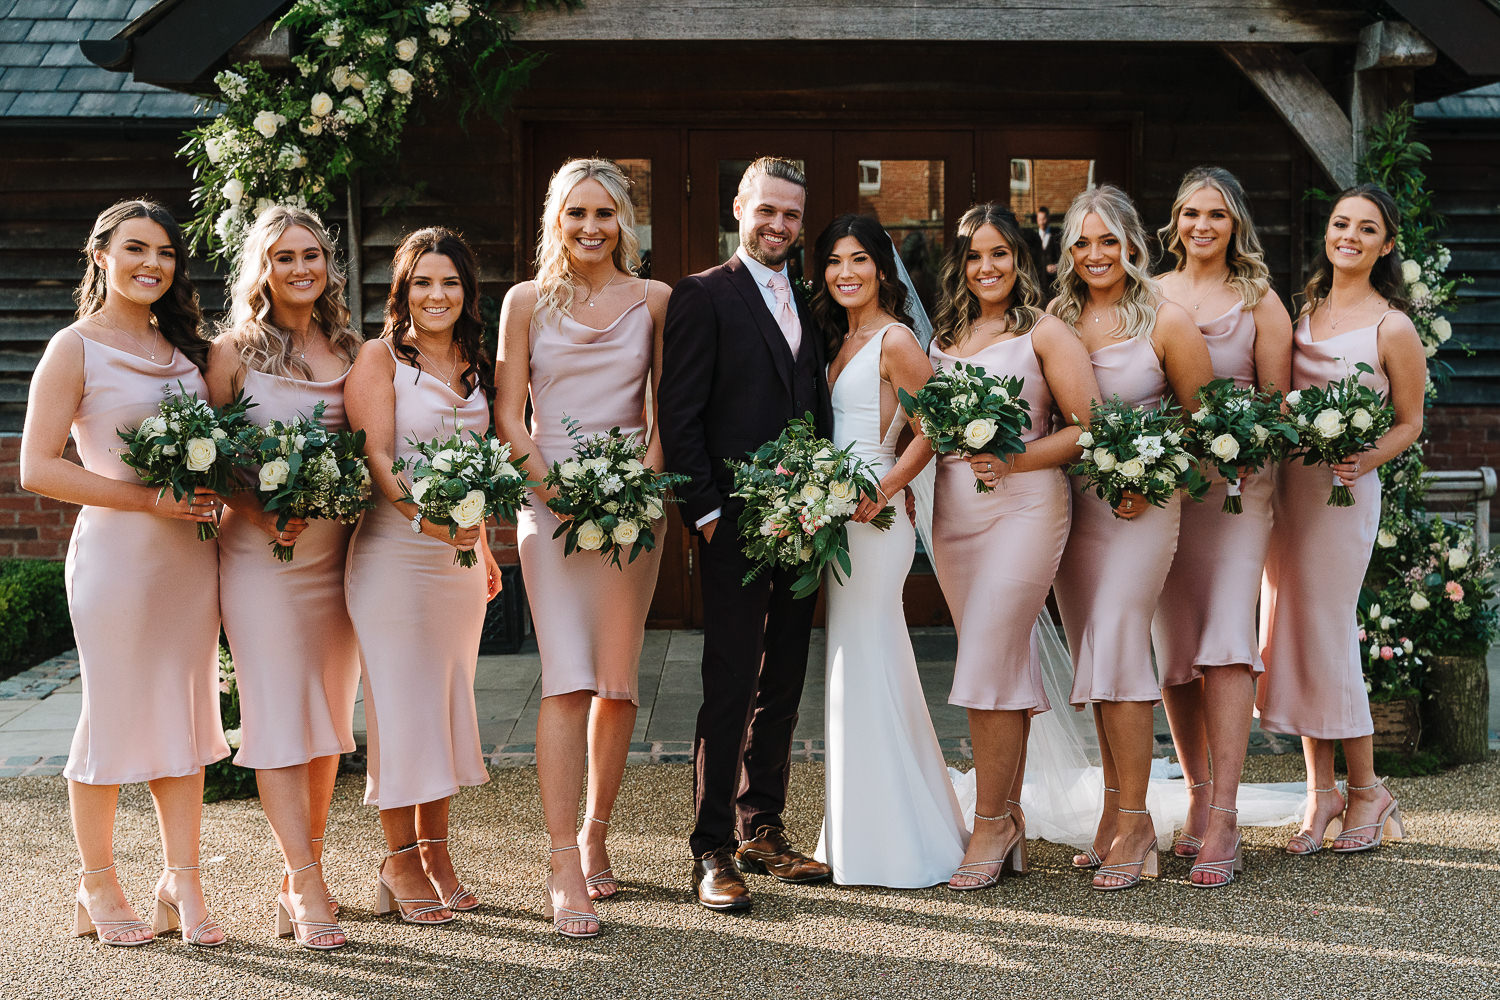 Group photo of the bridesmaids